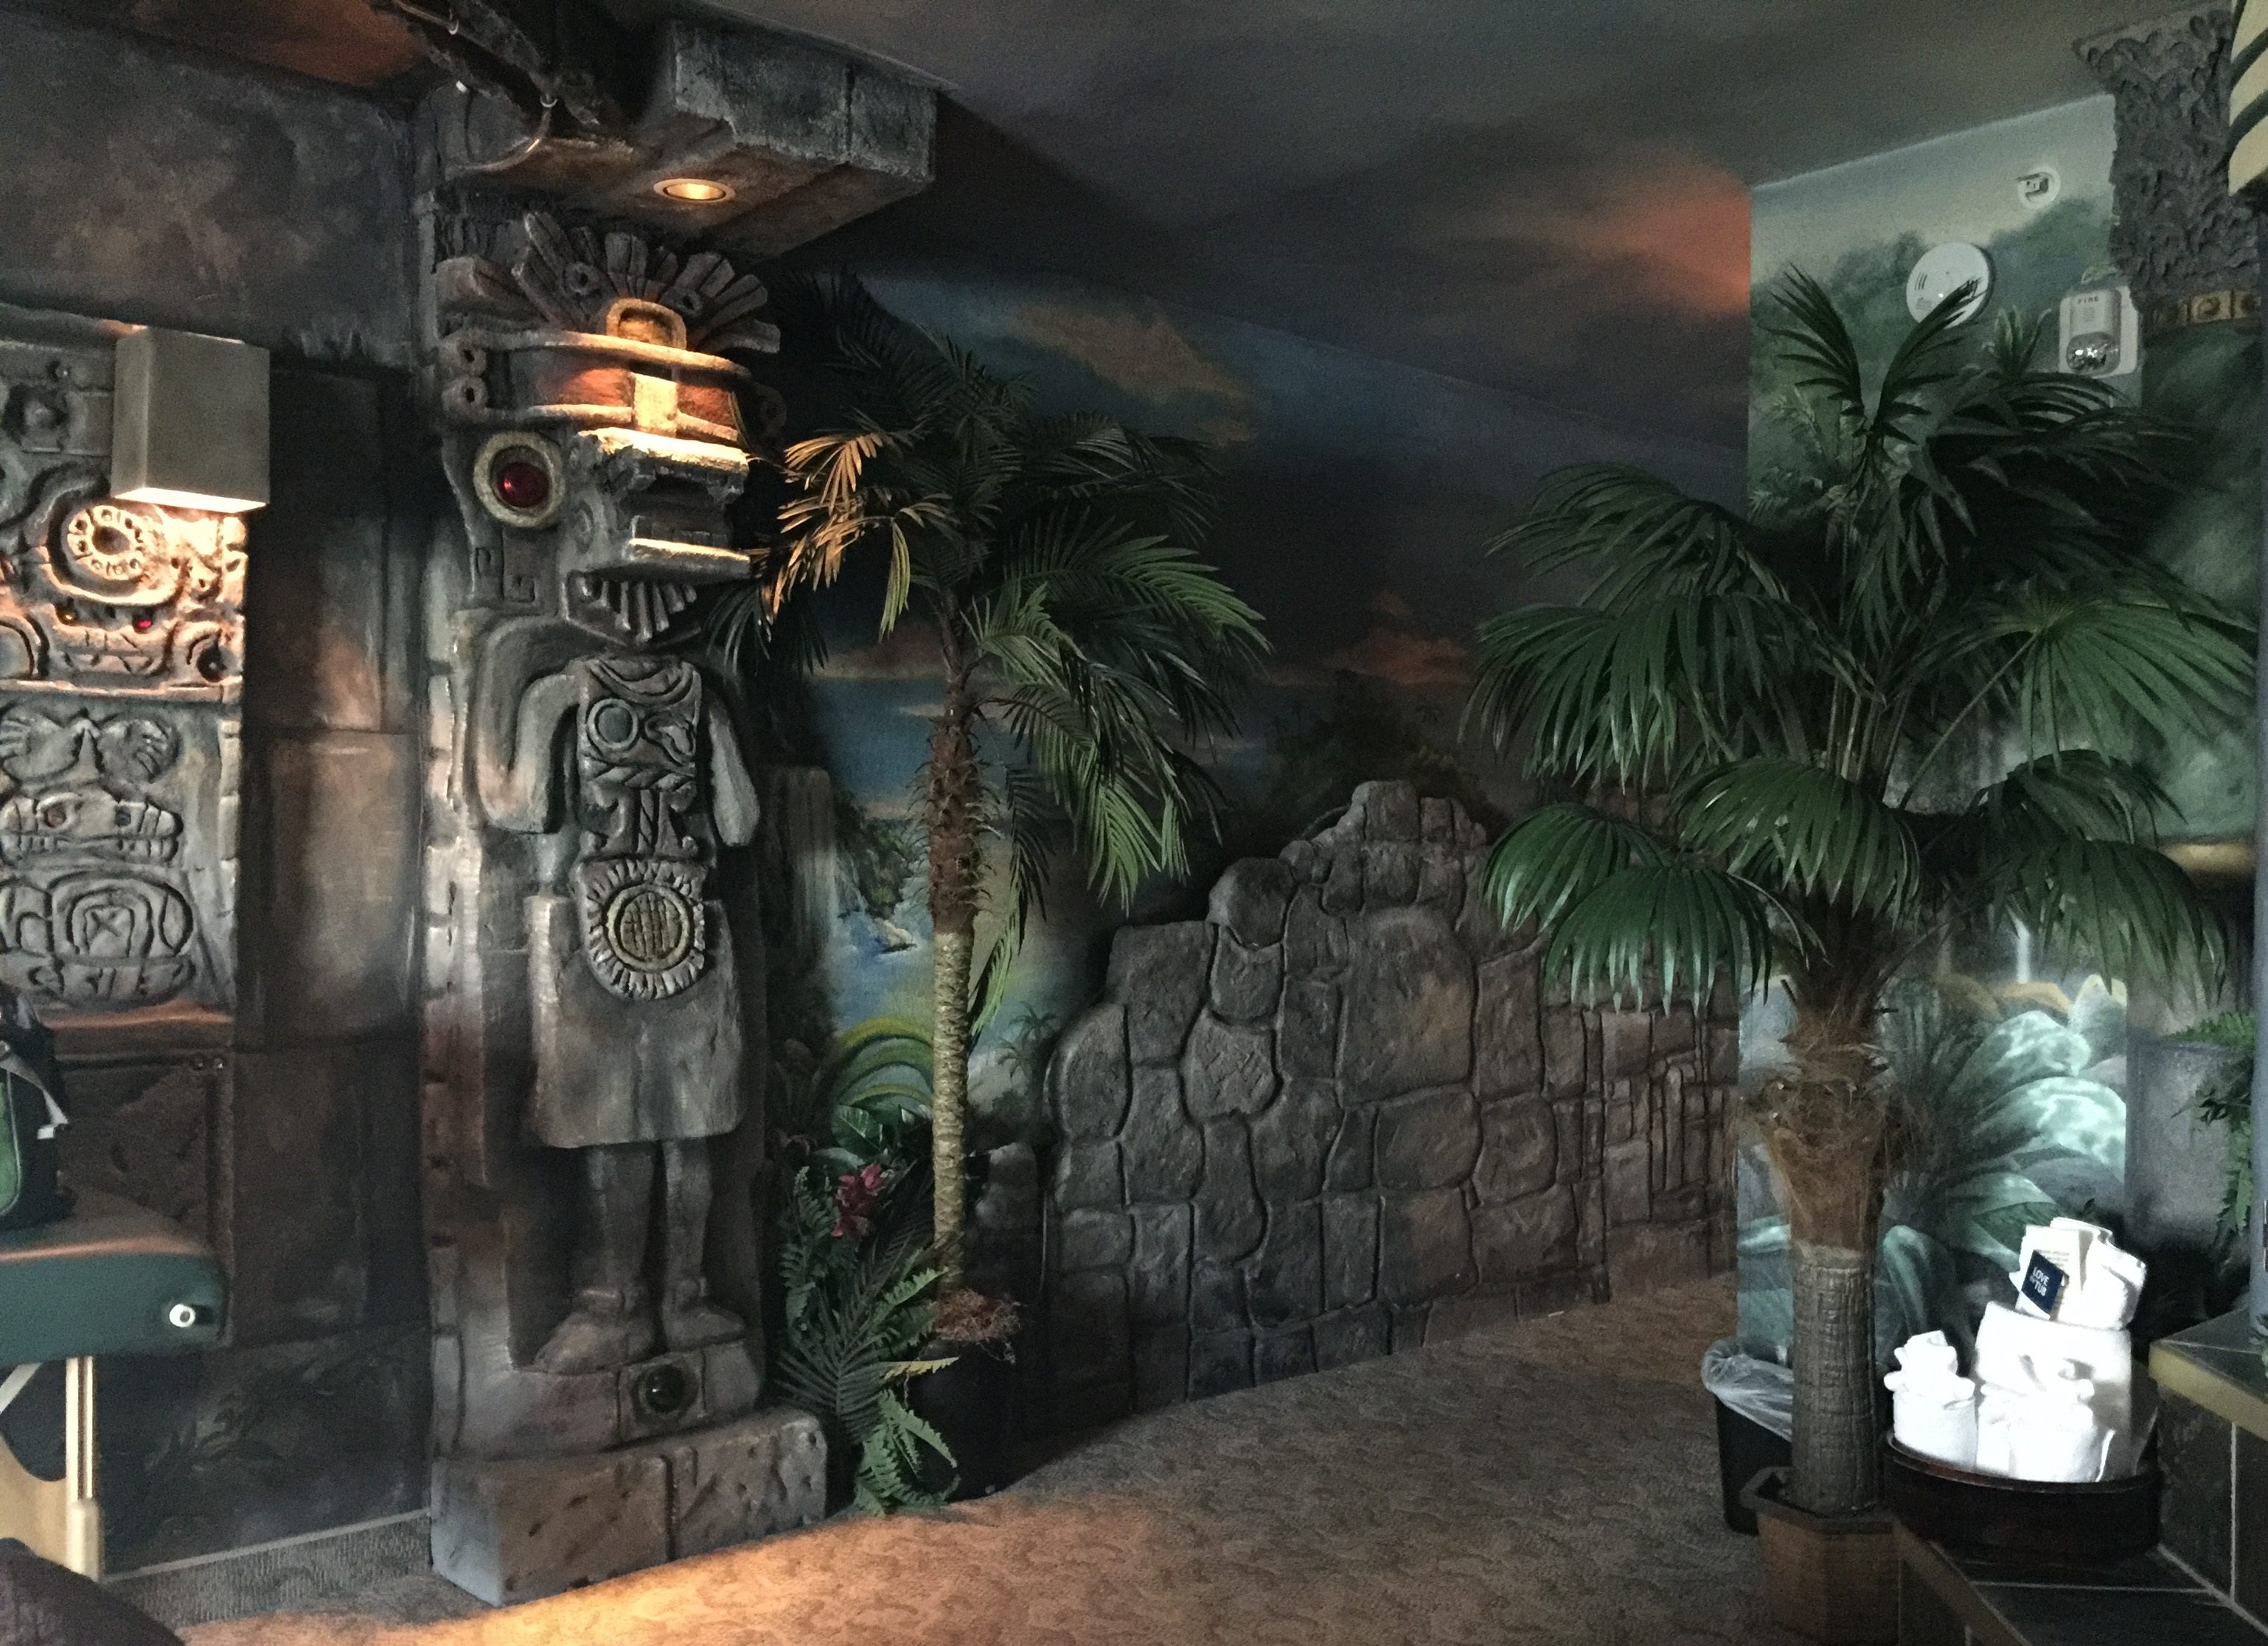 The Mayan-palace theme suite in Rexburg